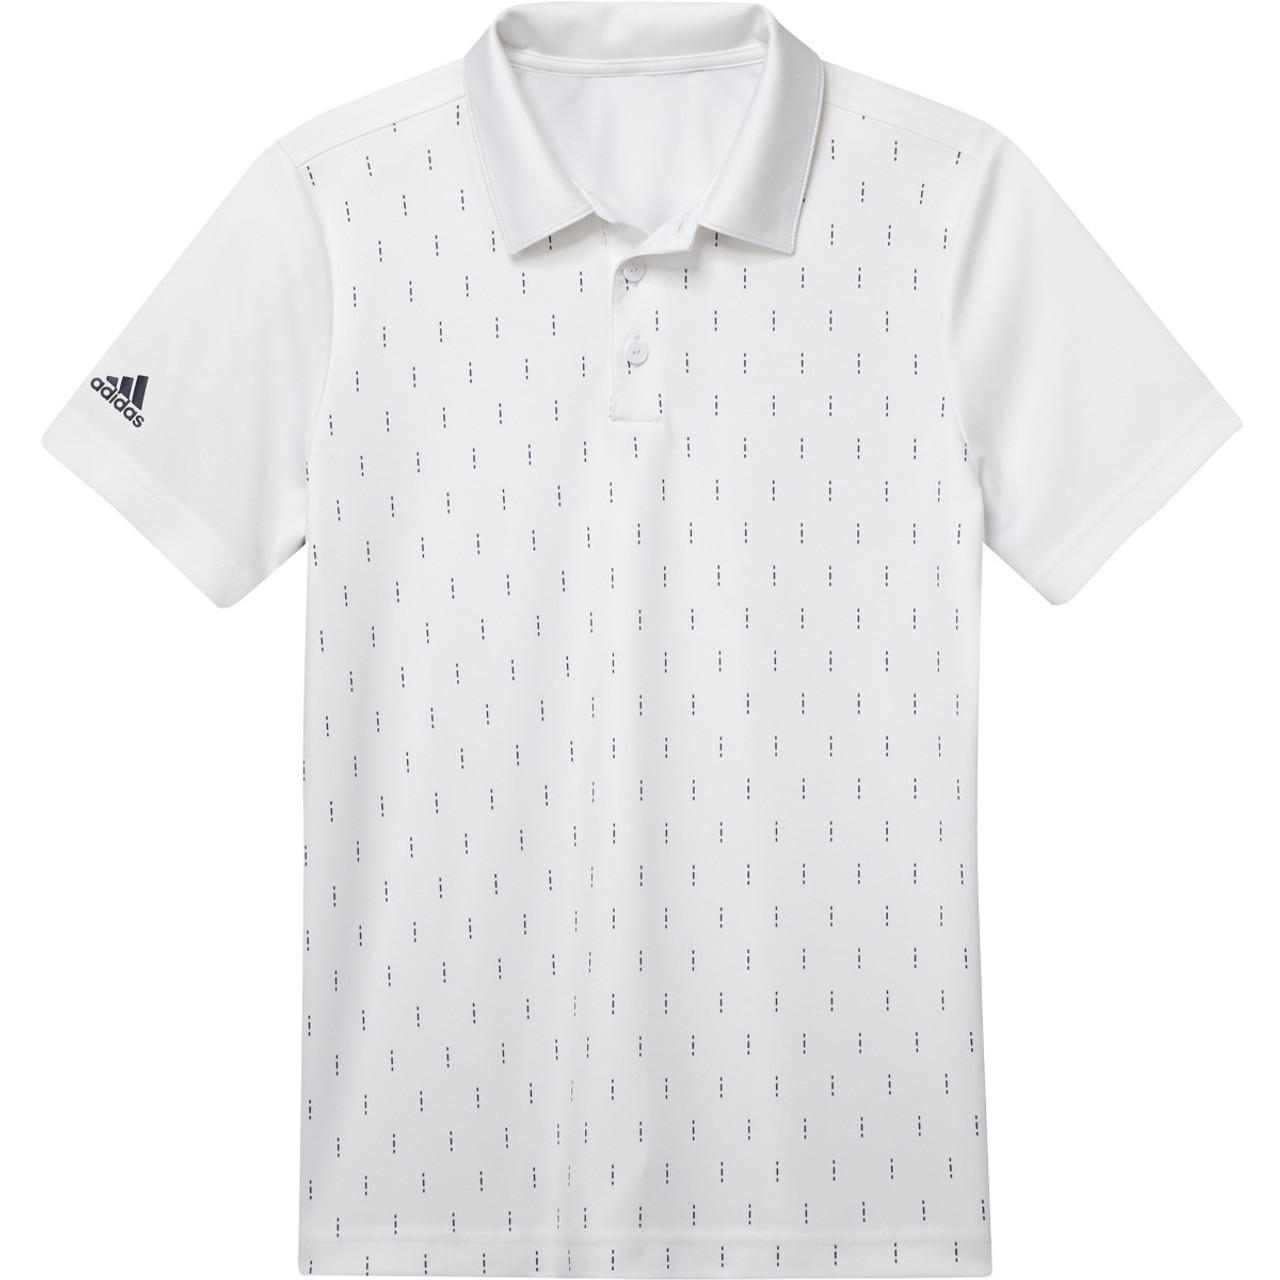 Adidas Boys Graphic Print Polo - White / Dark Blue